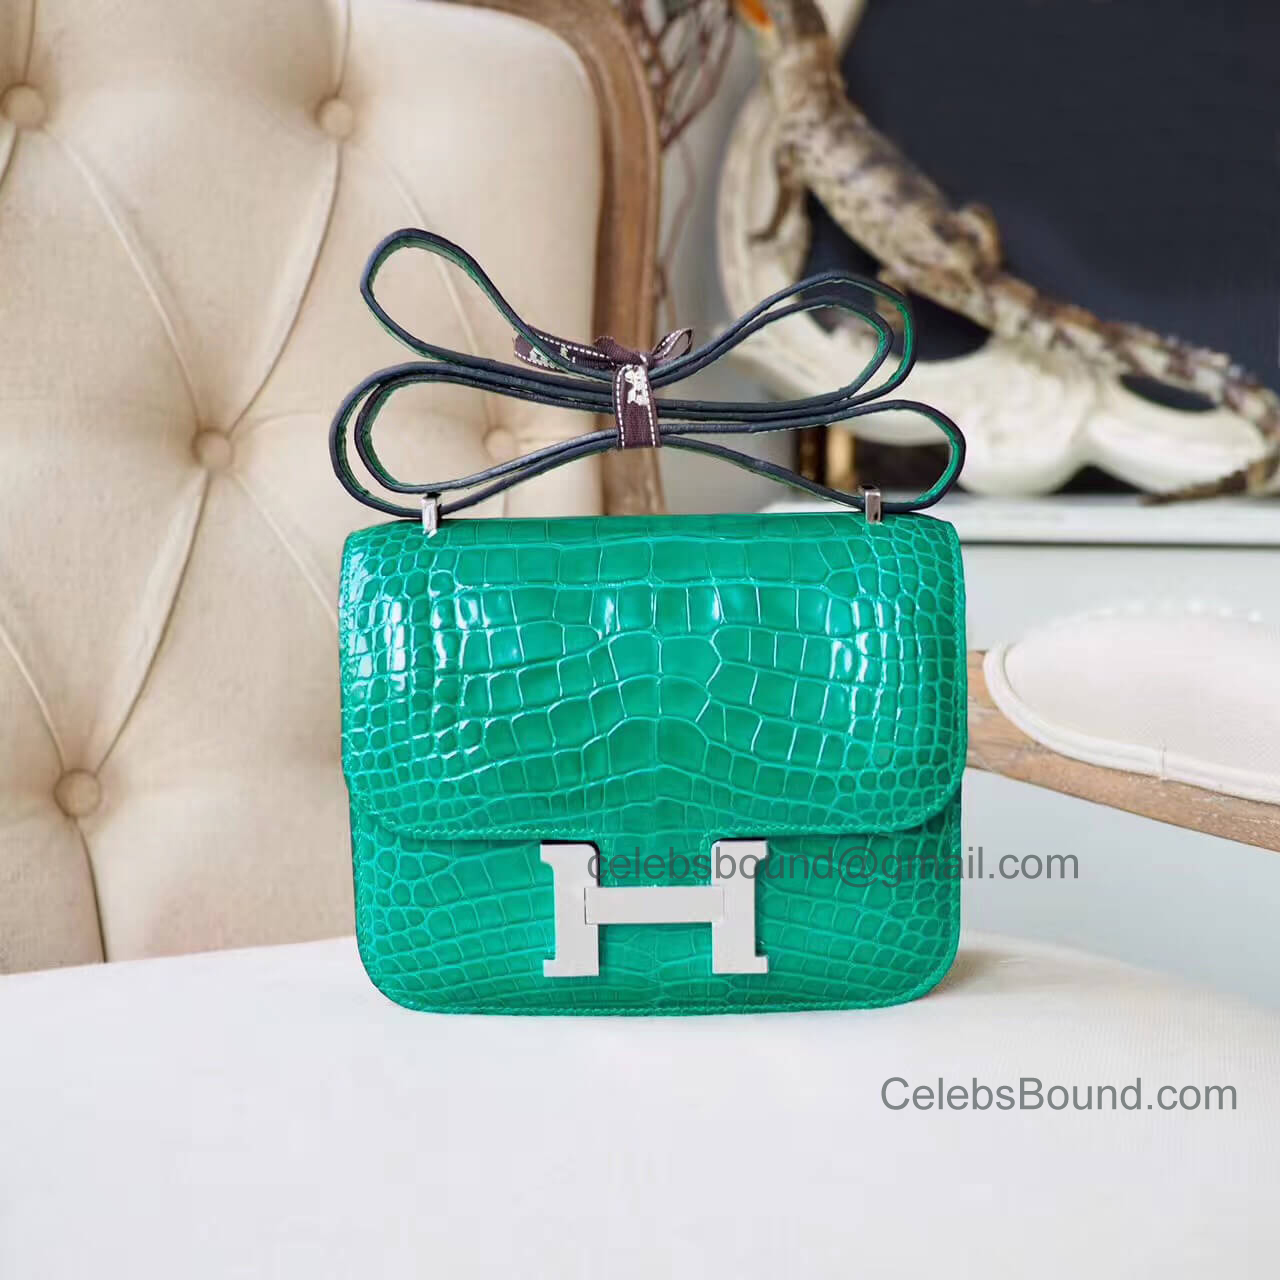 Replica Hermes Mini Constance 18 Bag in 6q Vert Emeraude Shiny Nile Croc PHW